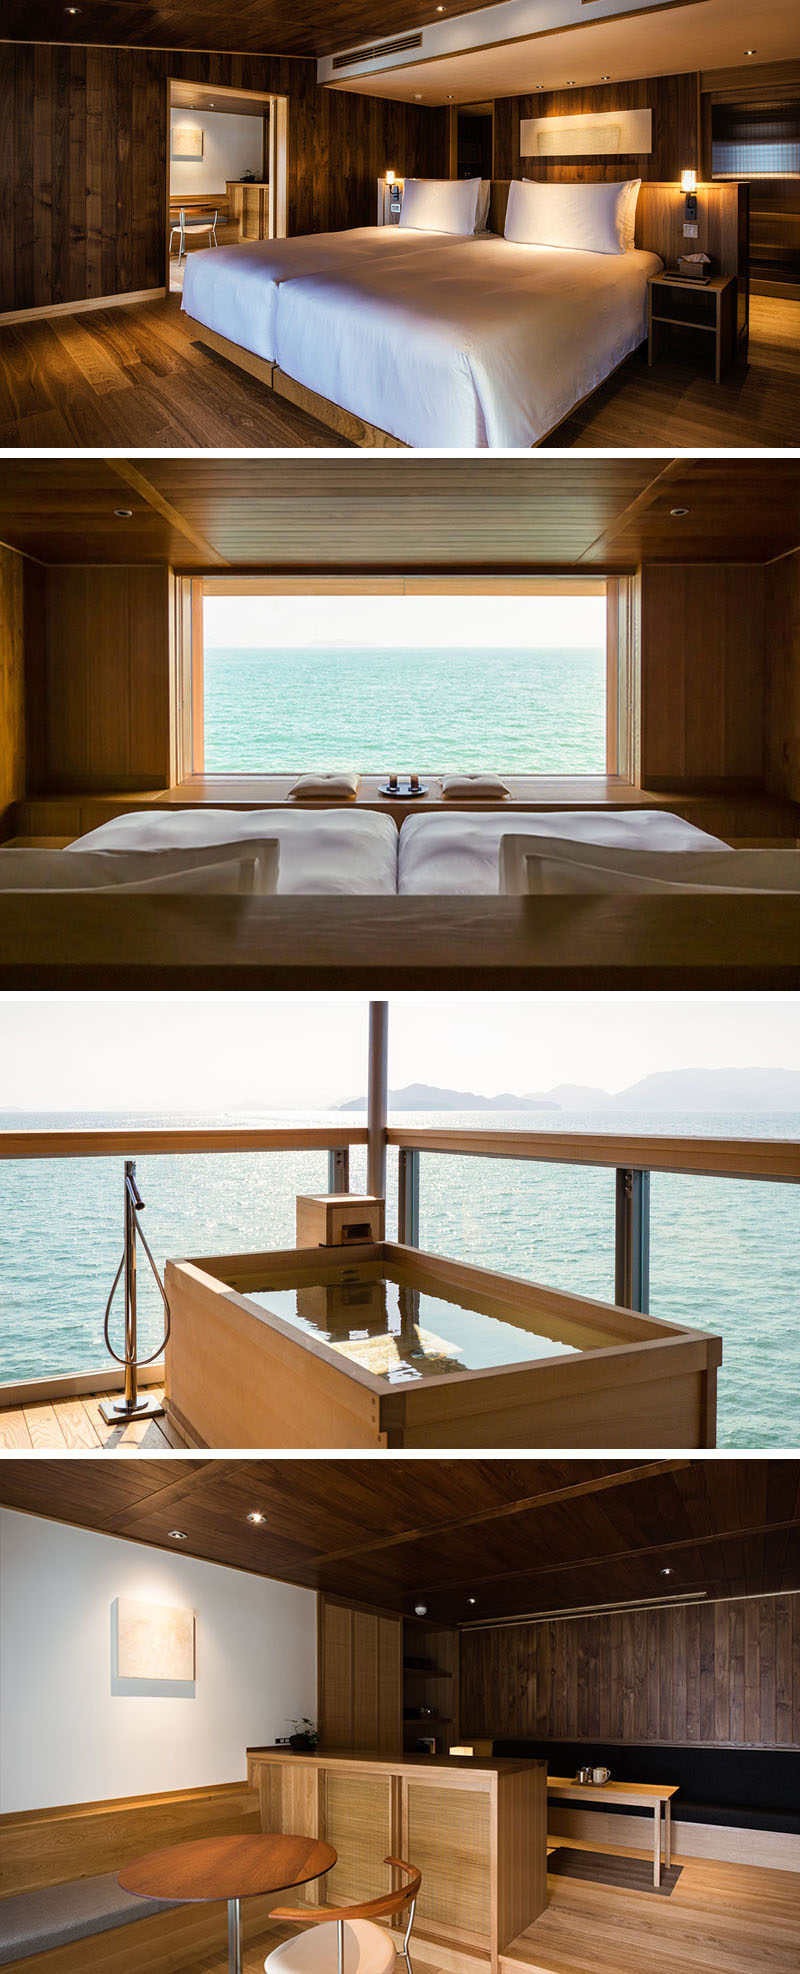 In this modern hotel suite, a pony wall has been used to create a headboard for the bed. Off to the side is a small bar area, while outside and on the balcony is a private deep soaking tub. #ModernHotelSuite #FloatingHotel #Japan